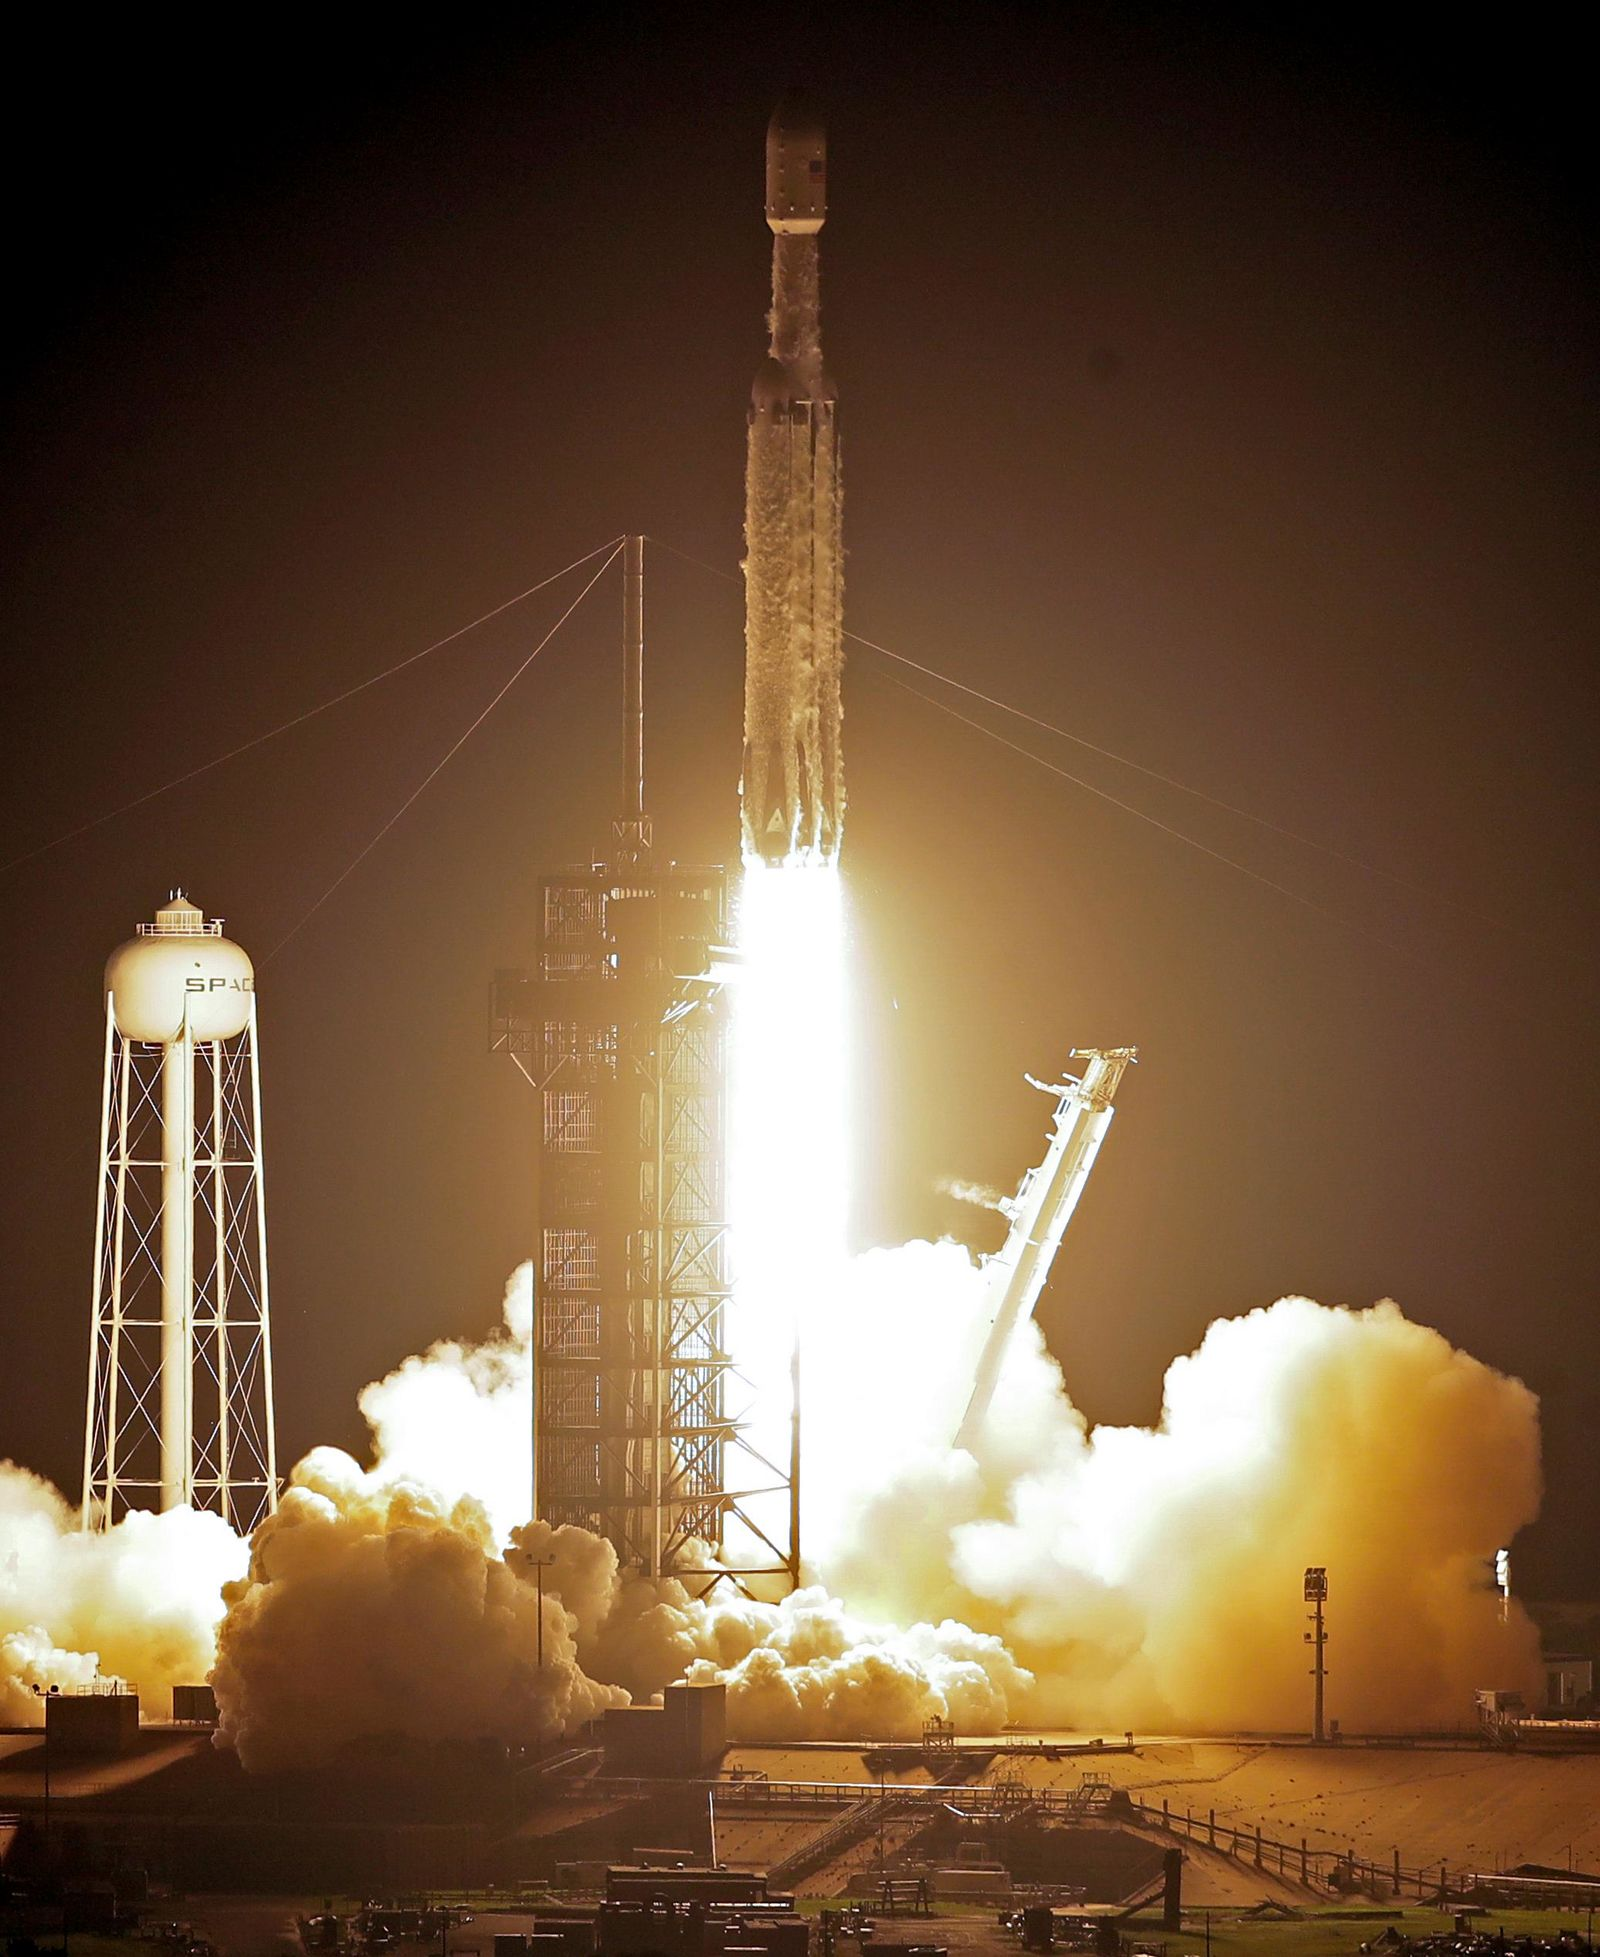 A SpaceX Falcon heavy rocket lifts off from pad 39A at the Kennedy Space Center in Cape Canaveral, Fla., early Tuesday, June 25, 2019. The Falcon rocket has a payload military and scientific research satellites. (AP Photo/John Raoux)